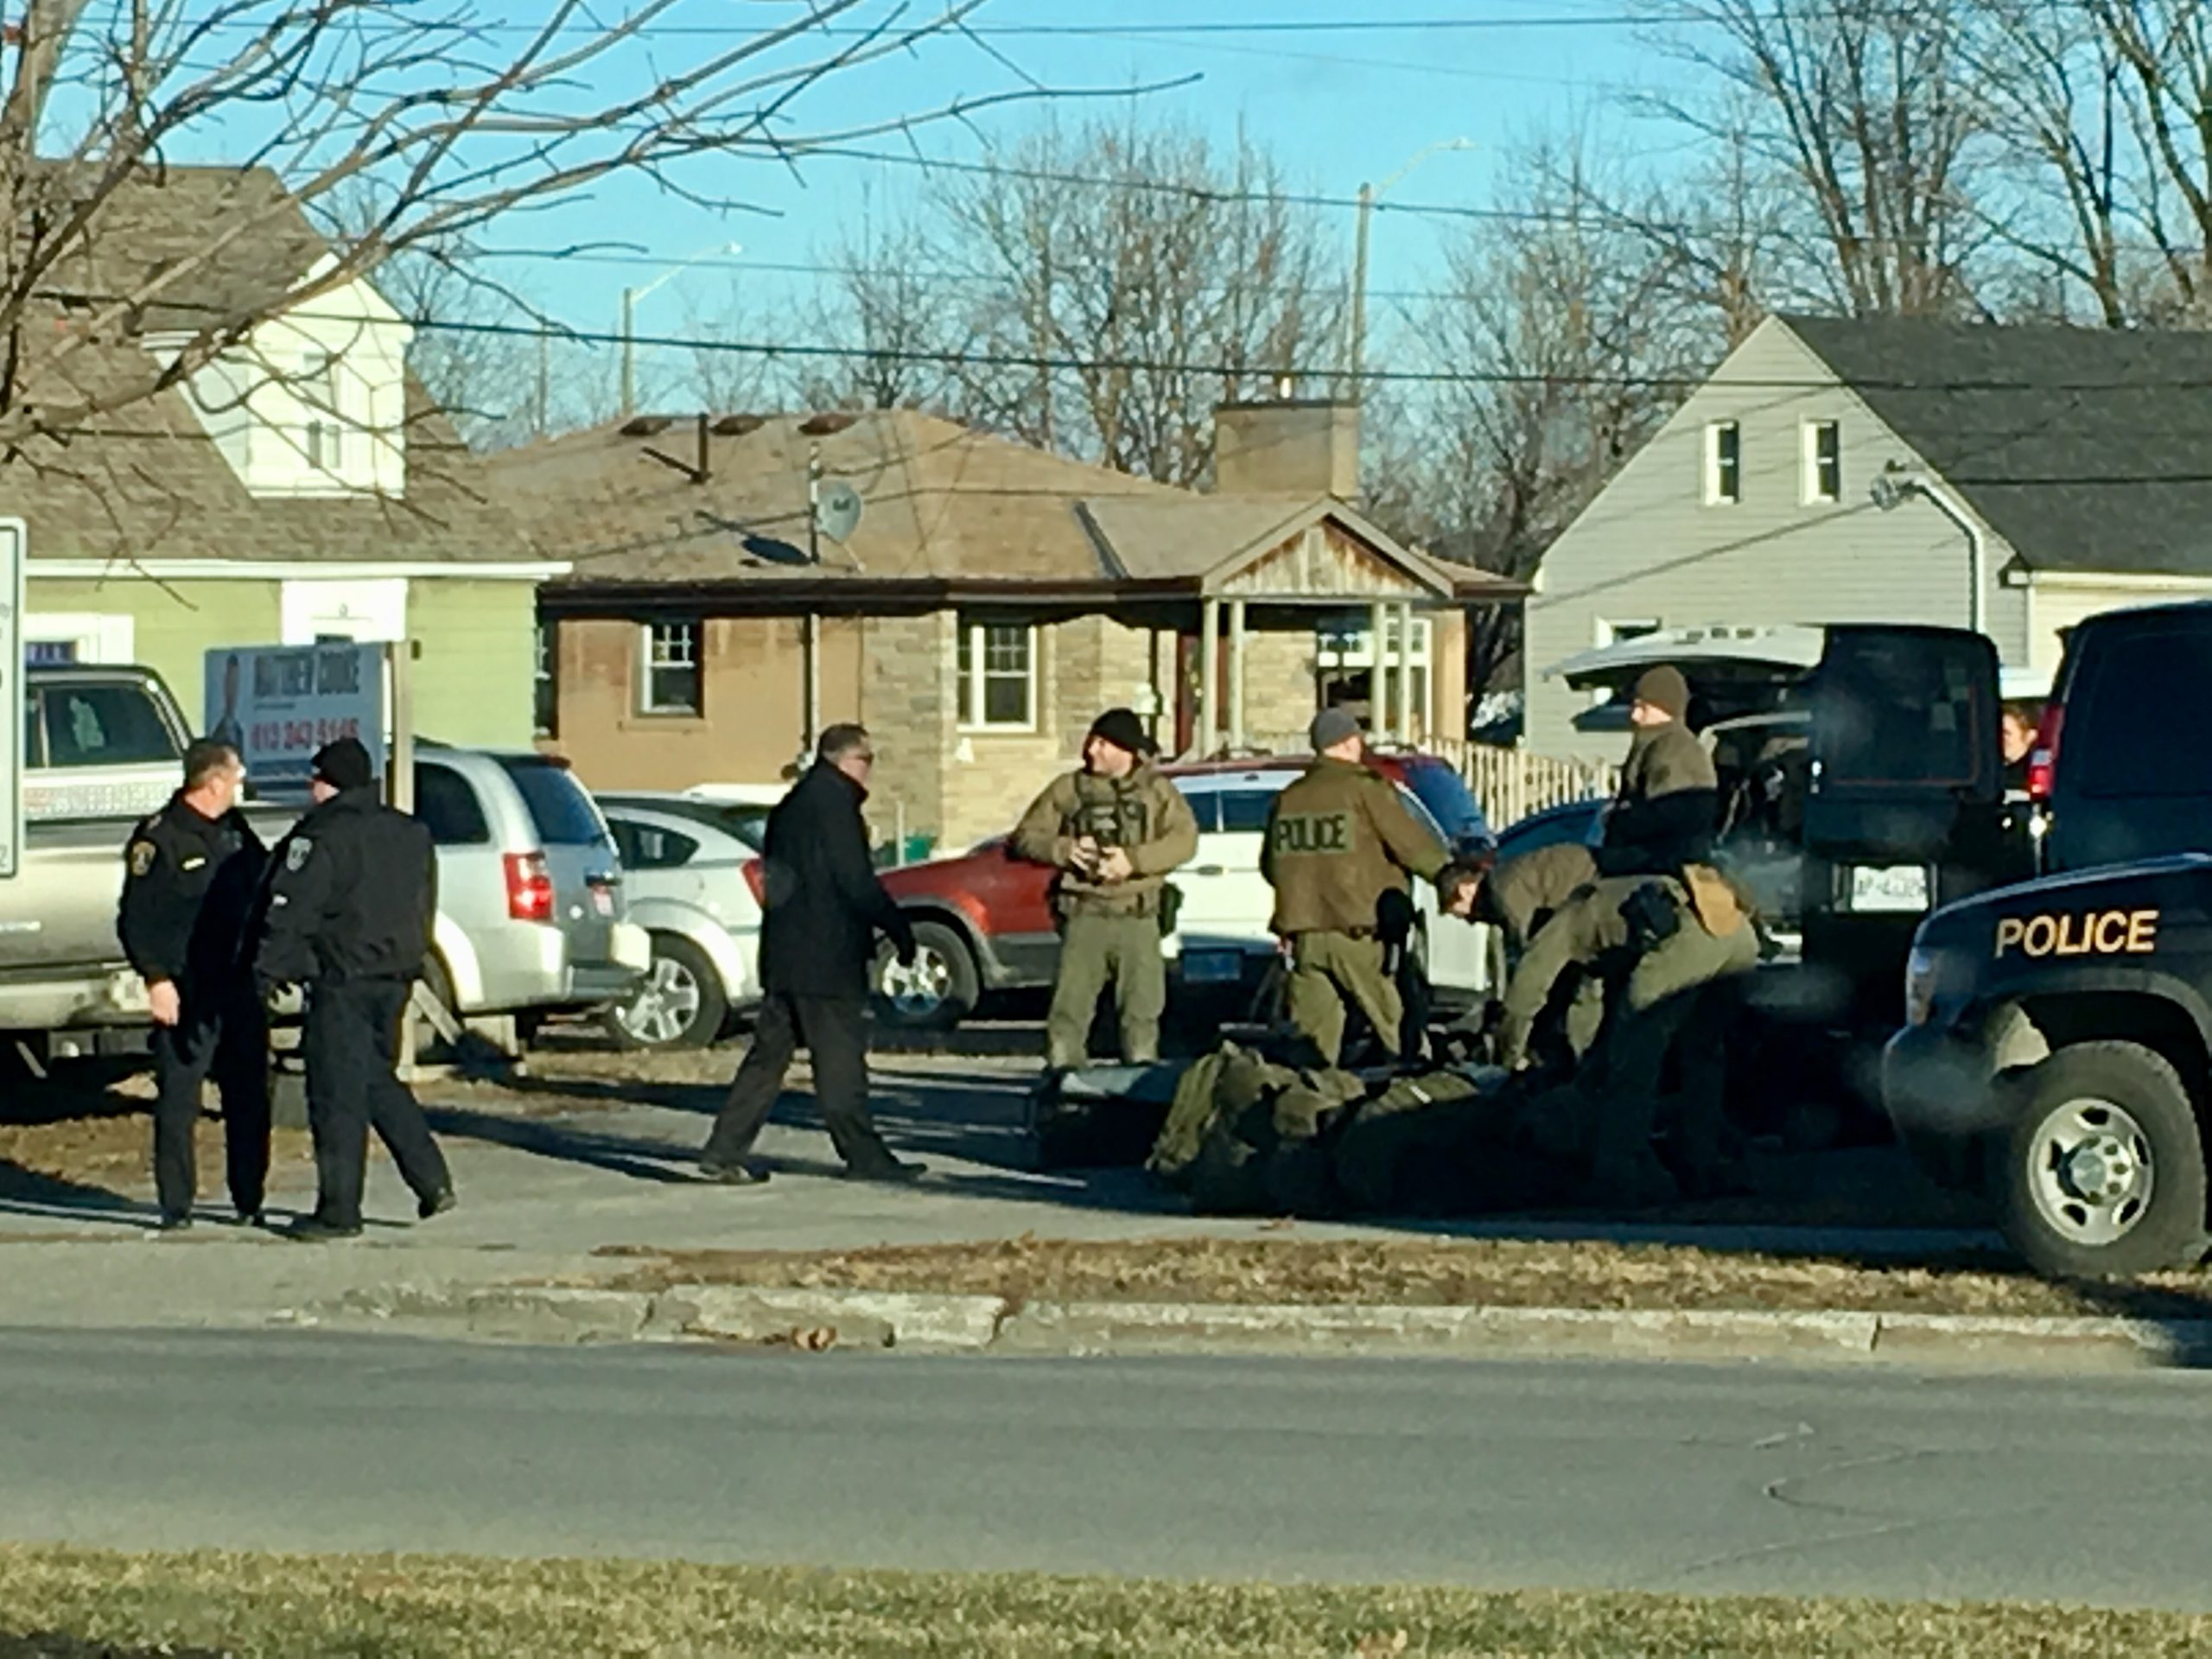 UPDATE: Serious incident in Belleville ends safely